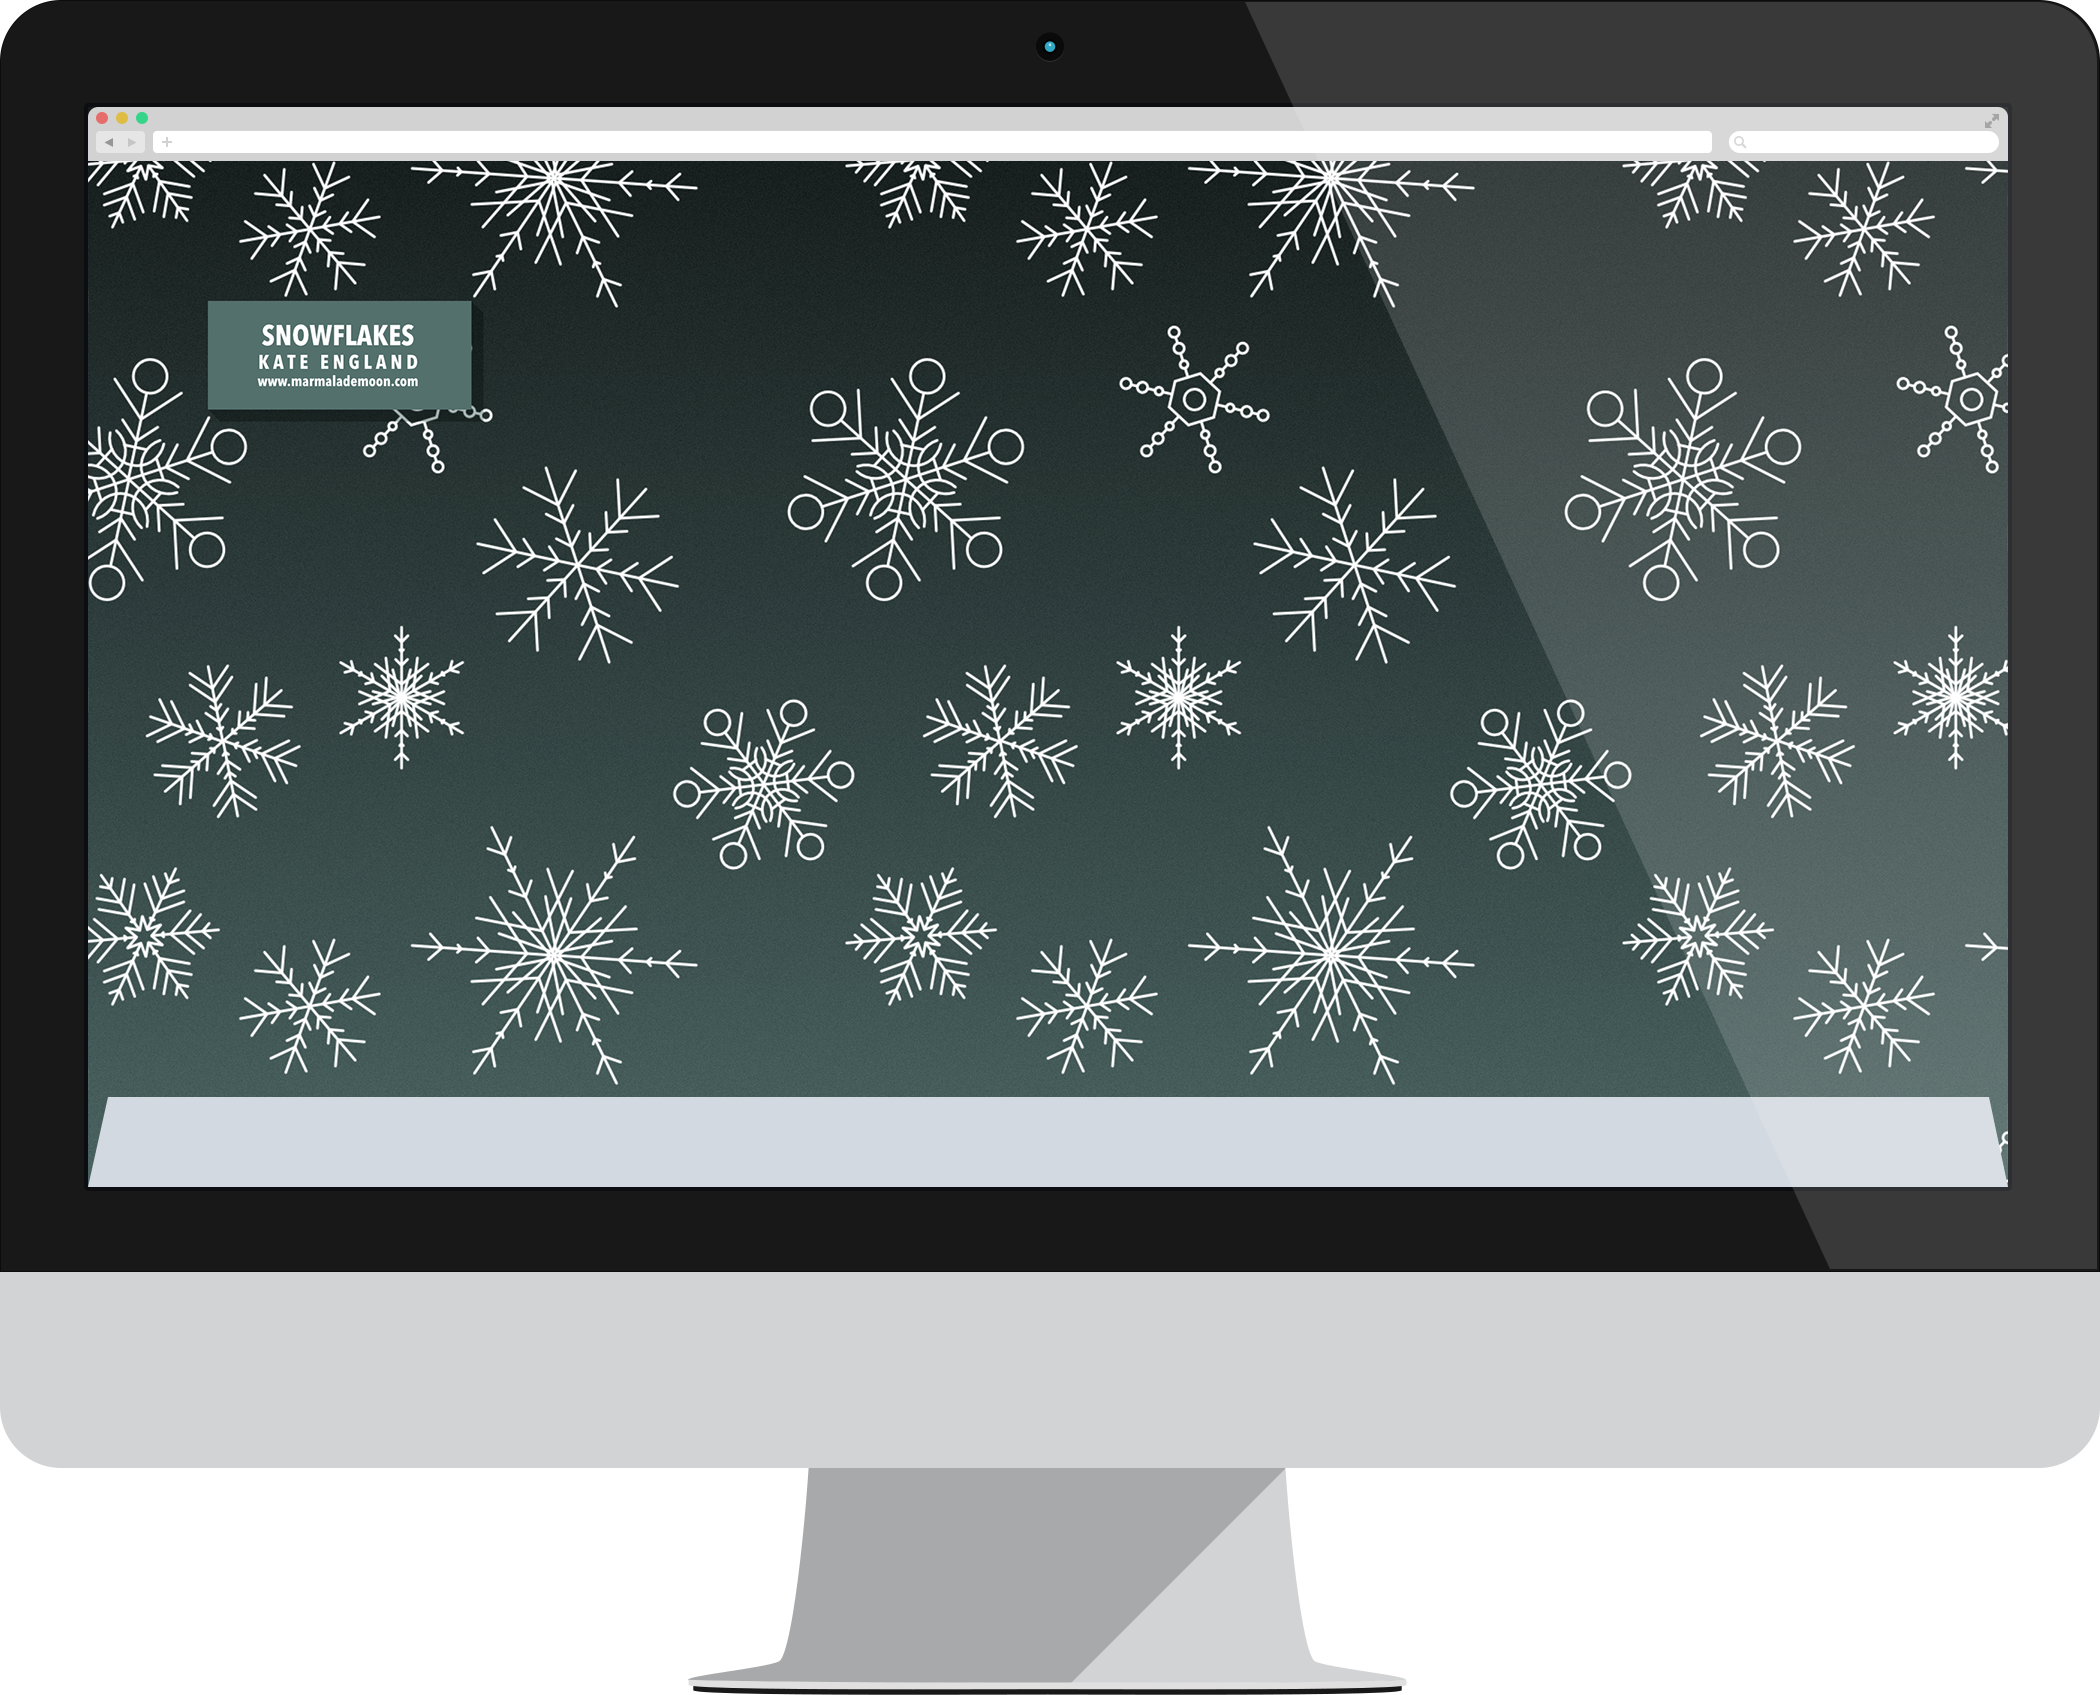 snowflakes-desktop-wallpaper.png